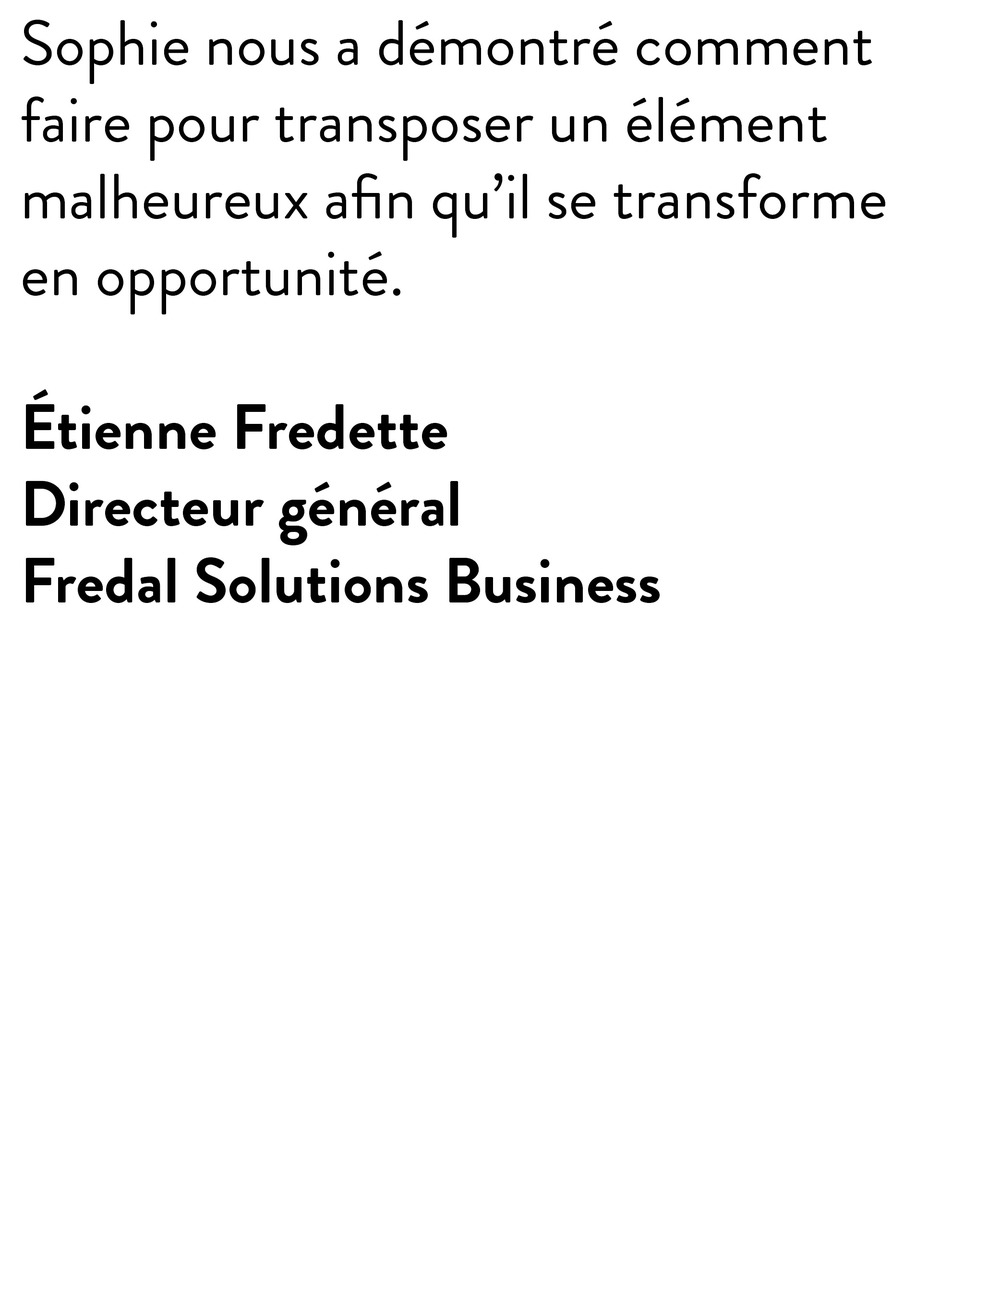 Etienne_Fredette_Fredal_Solutions.jpg